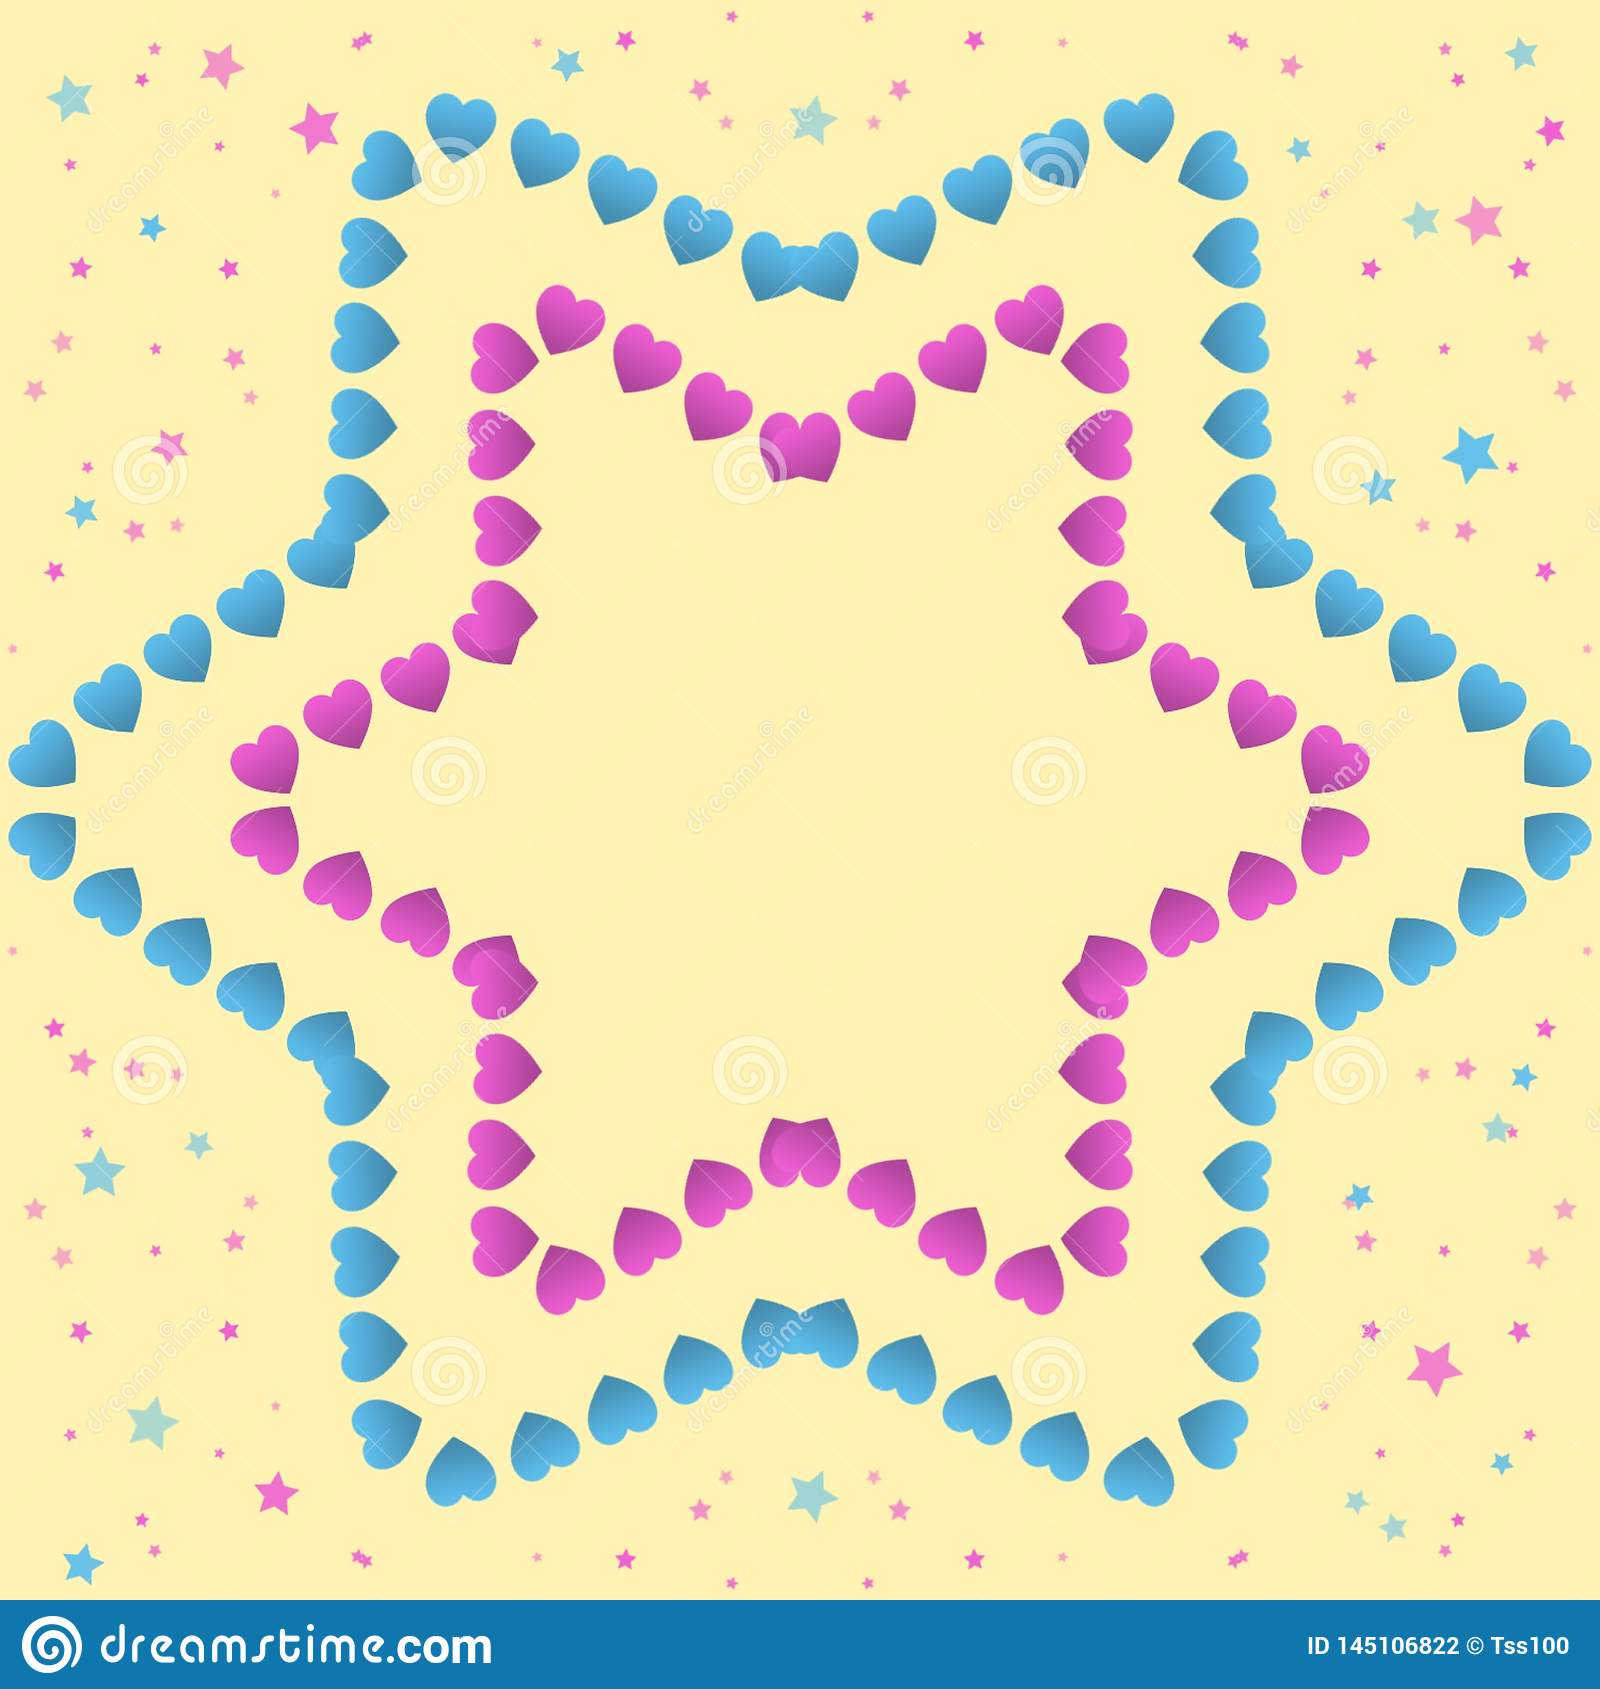 Small pink and blue hearts forming a star on a yellow background with small stars, hand drawn illustration with pastel colors